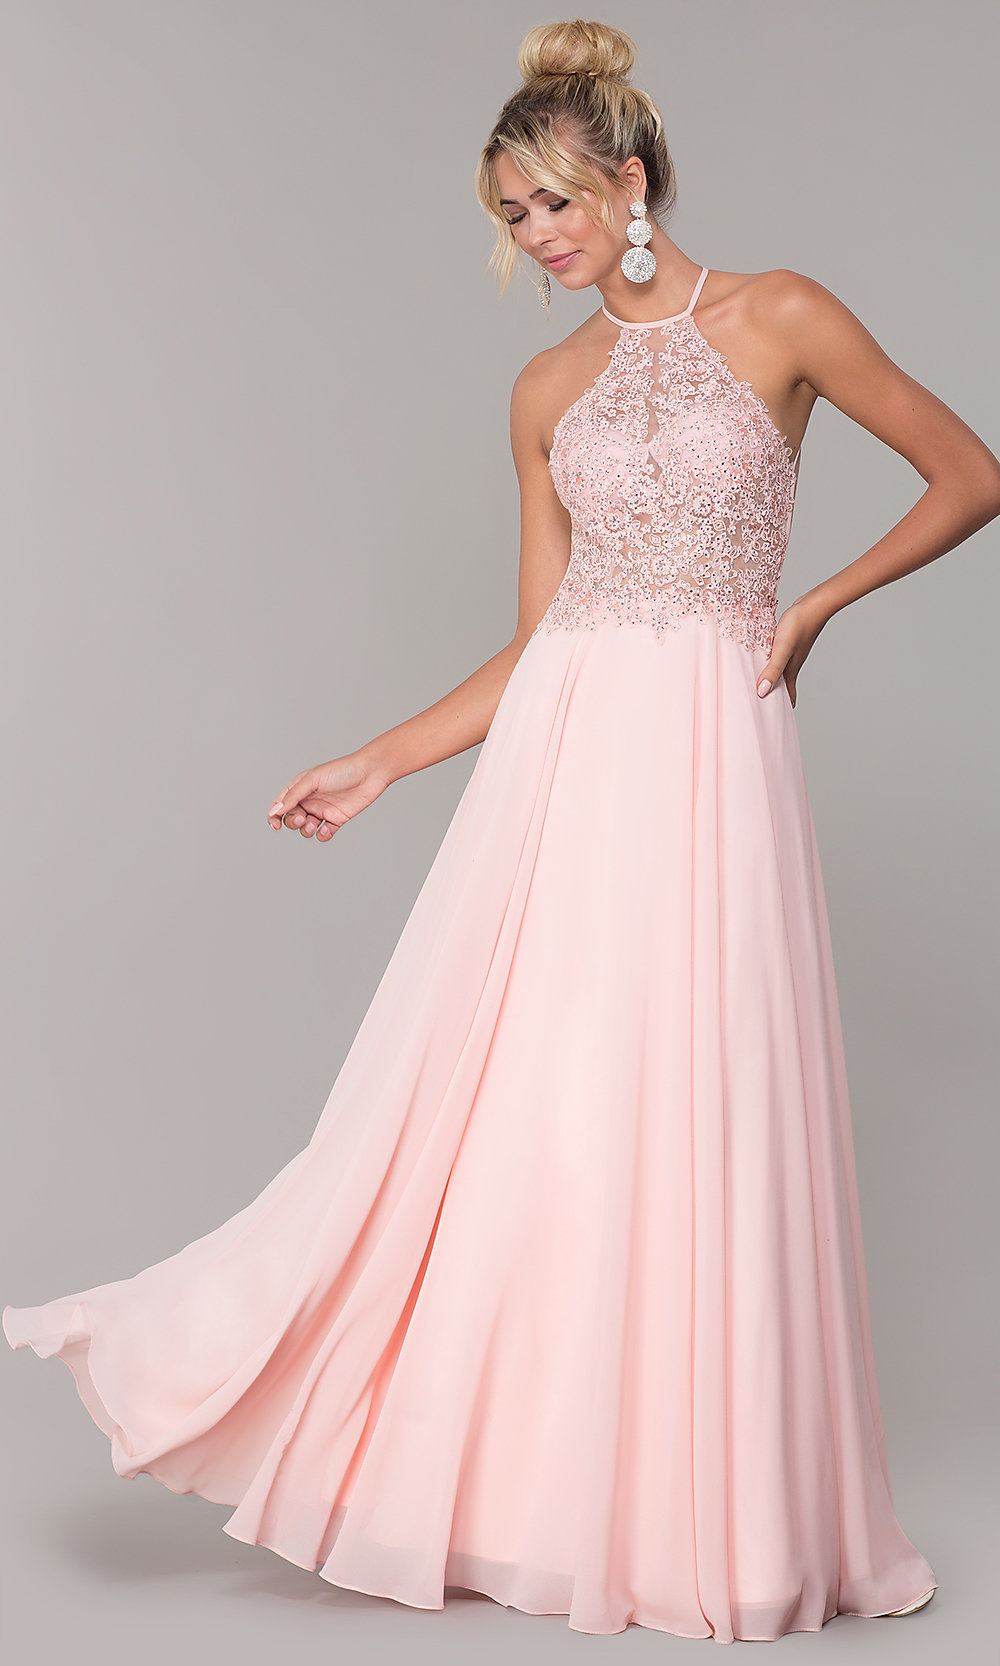 3dbe3cab15d2f High-Neck Long Blush Pink Prom Dress by PromGirl